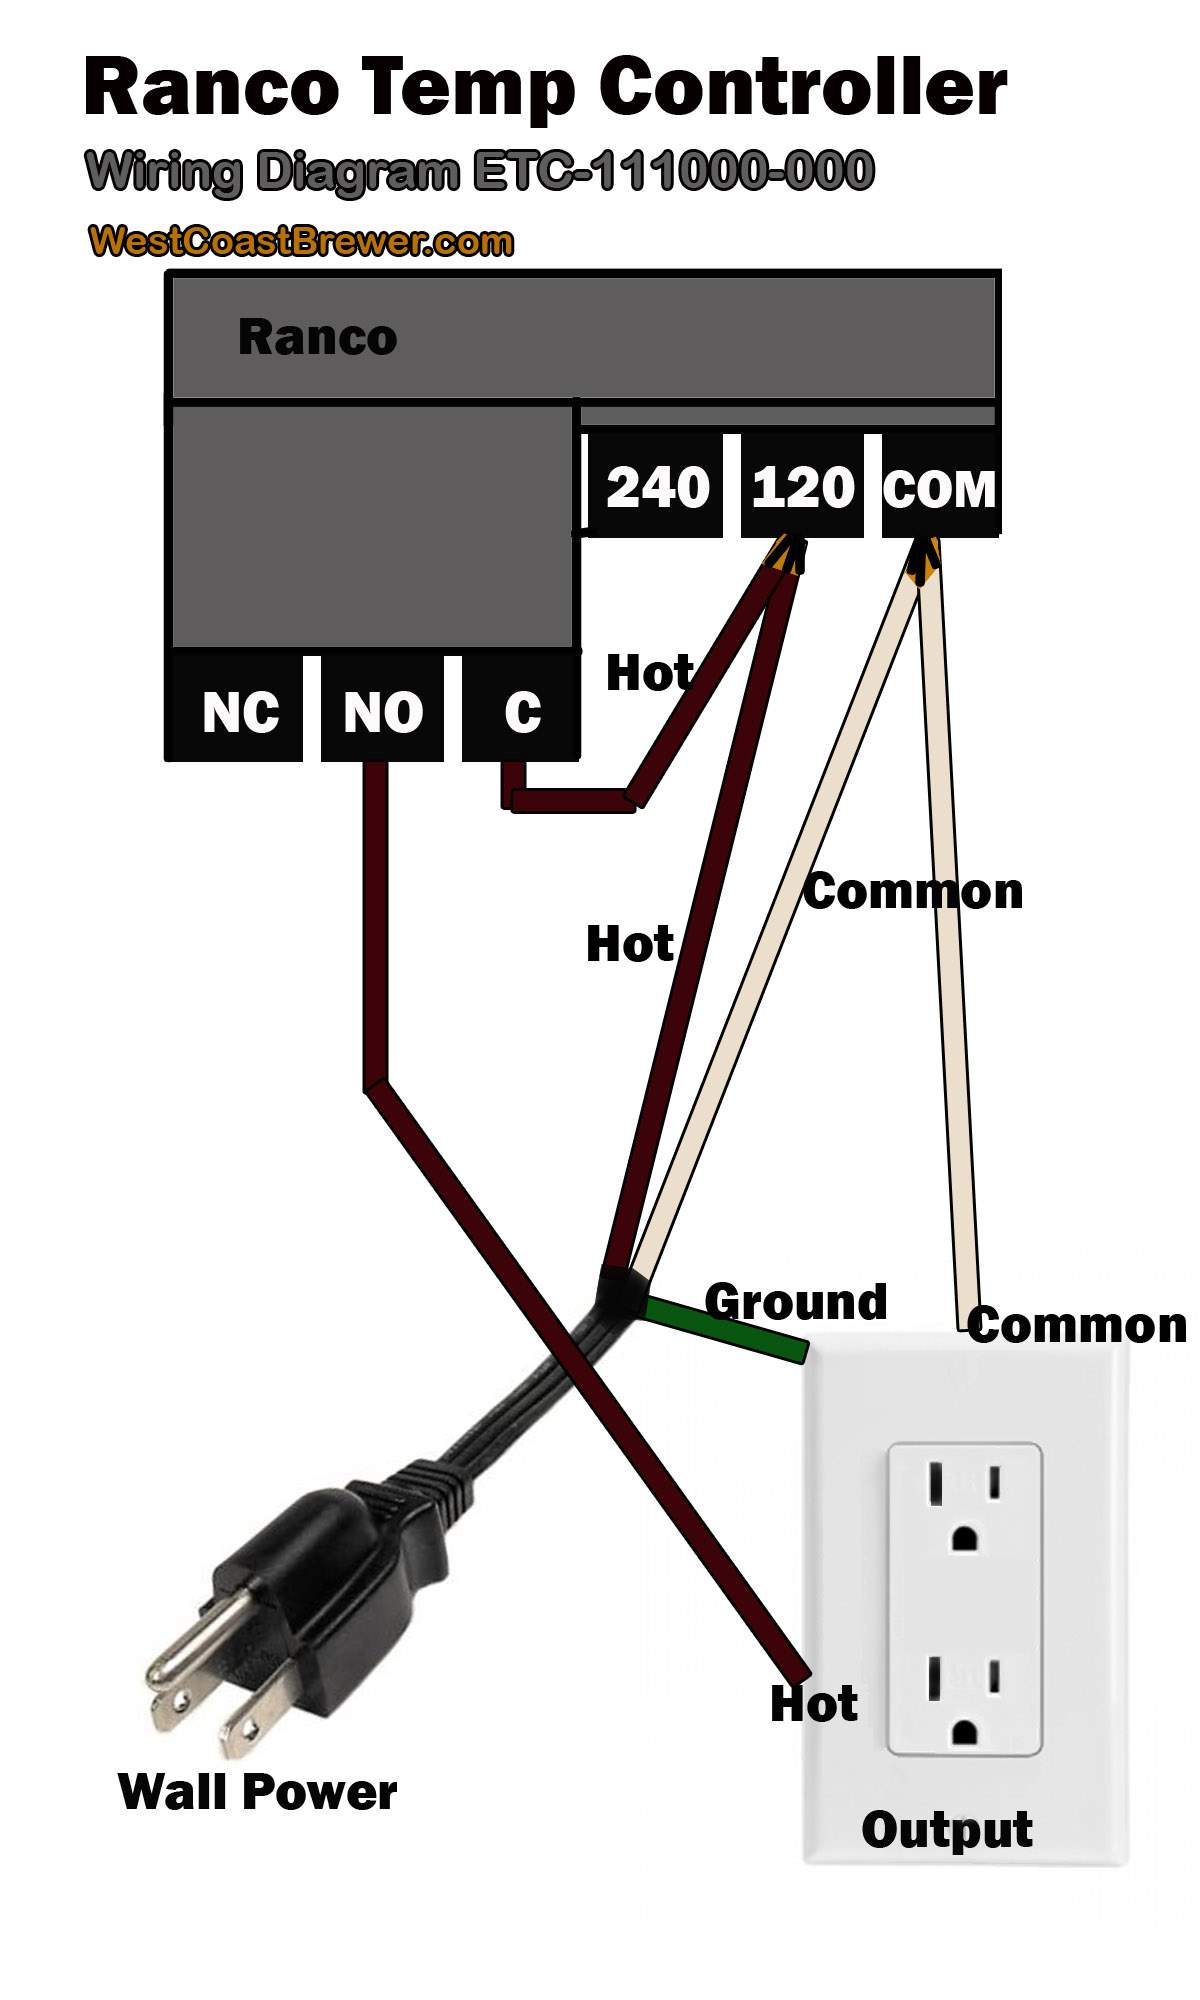 Ranco Digital Temperature Controller Wiring Diagram how to wire a ranco digital temperature controller homebrewing temperature control wiring diagram at alyssarenee.co